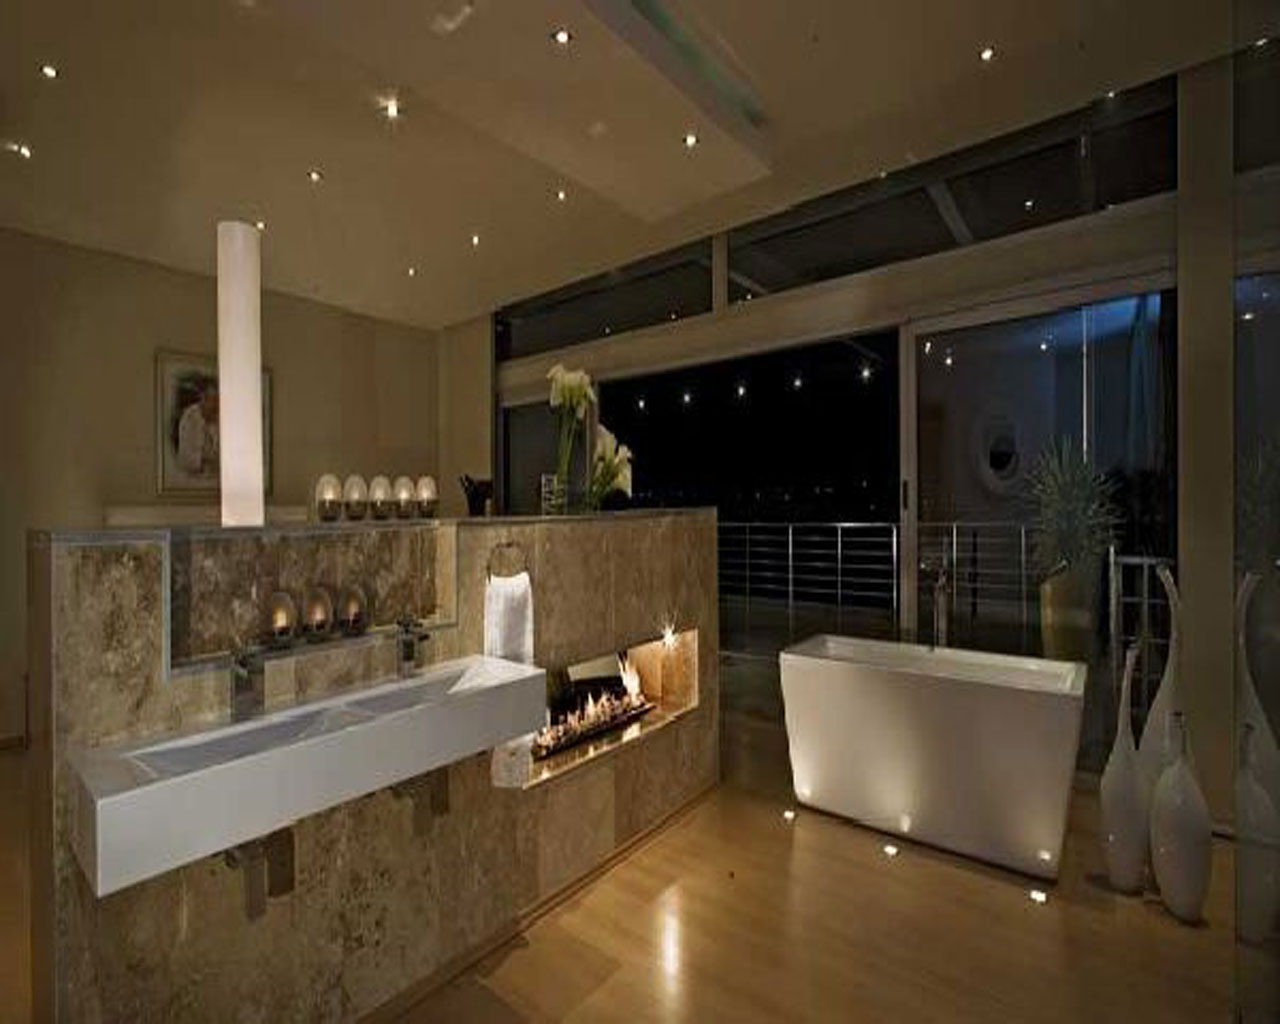 Bathroom Designs 2014: 25 Must See Modern Bathroom Designs For 2014